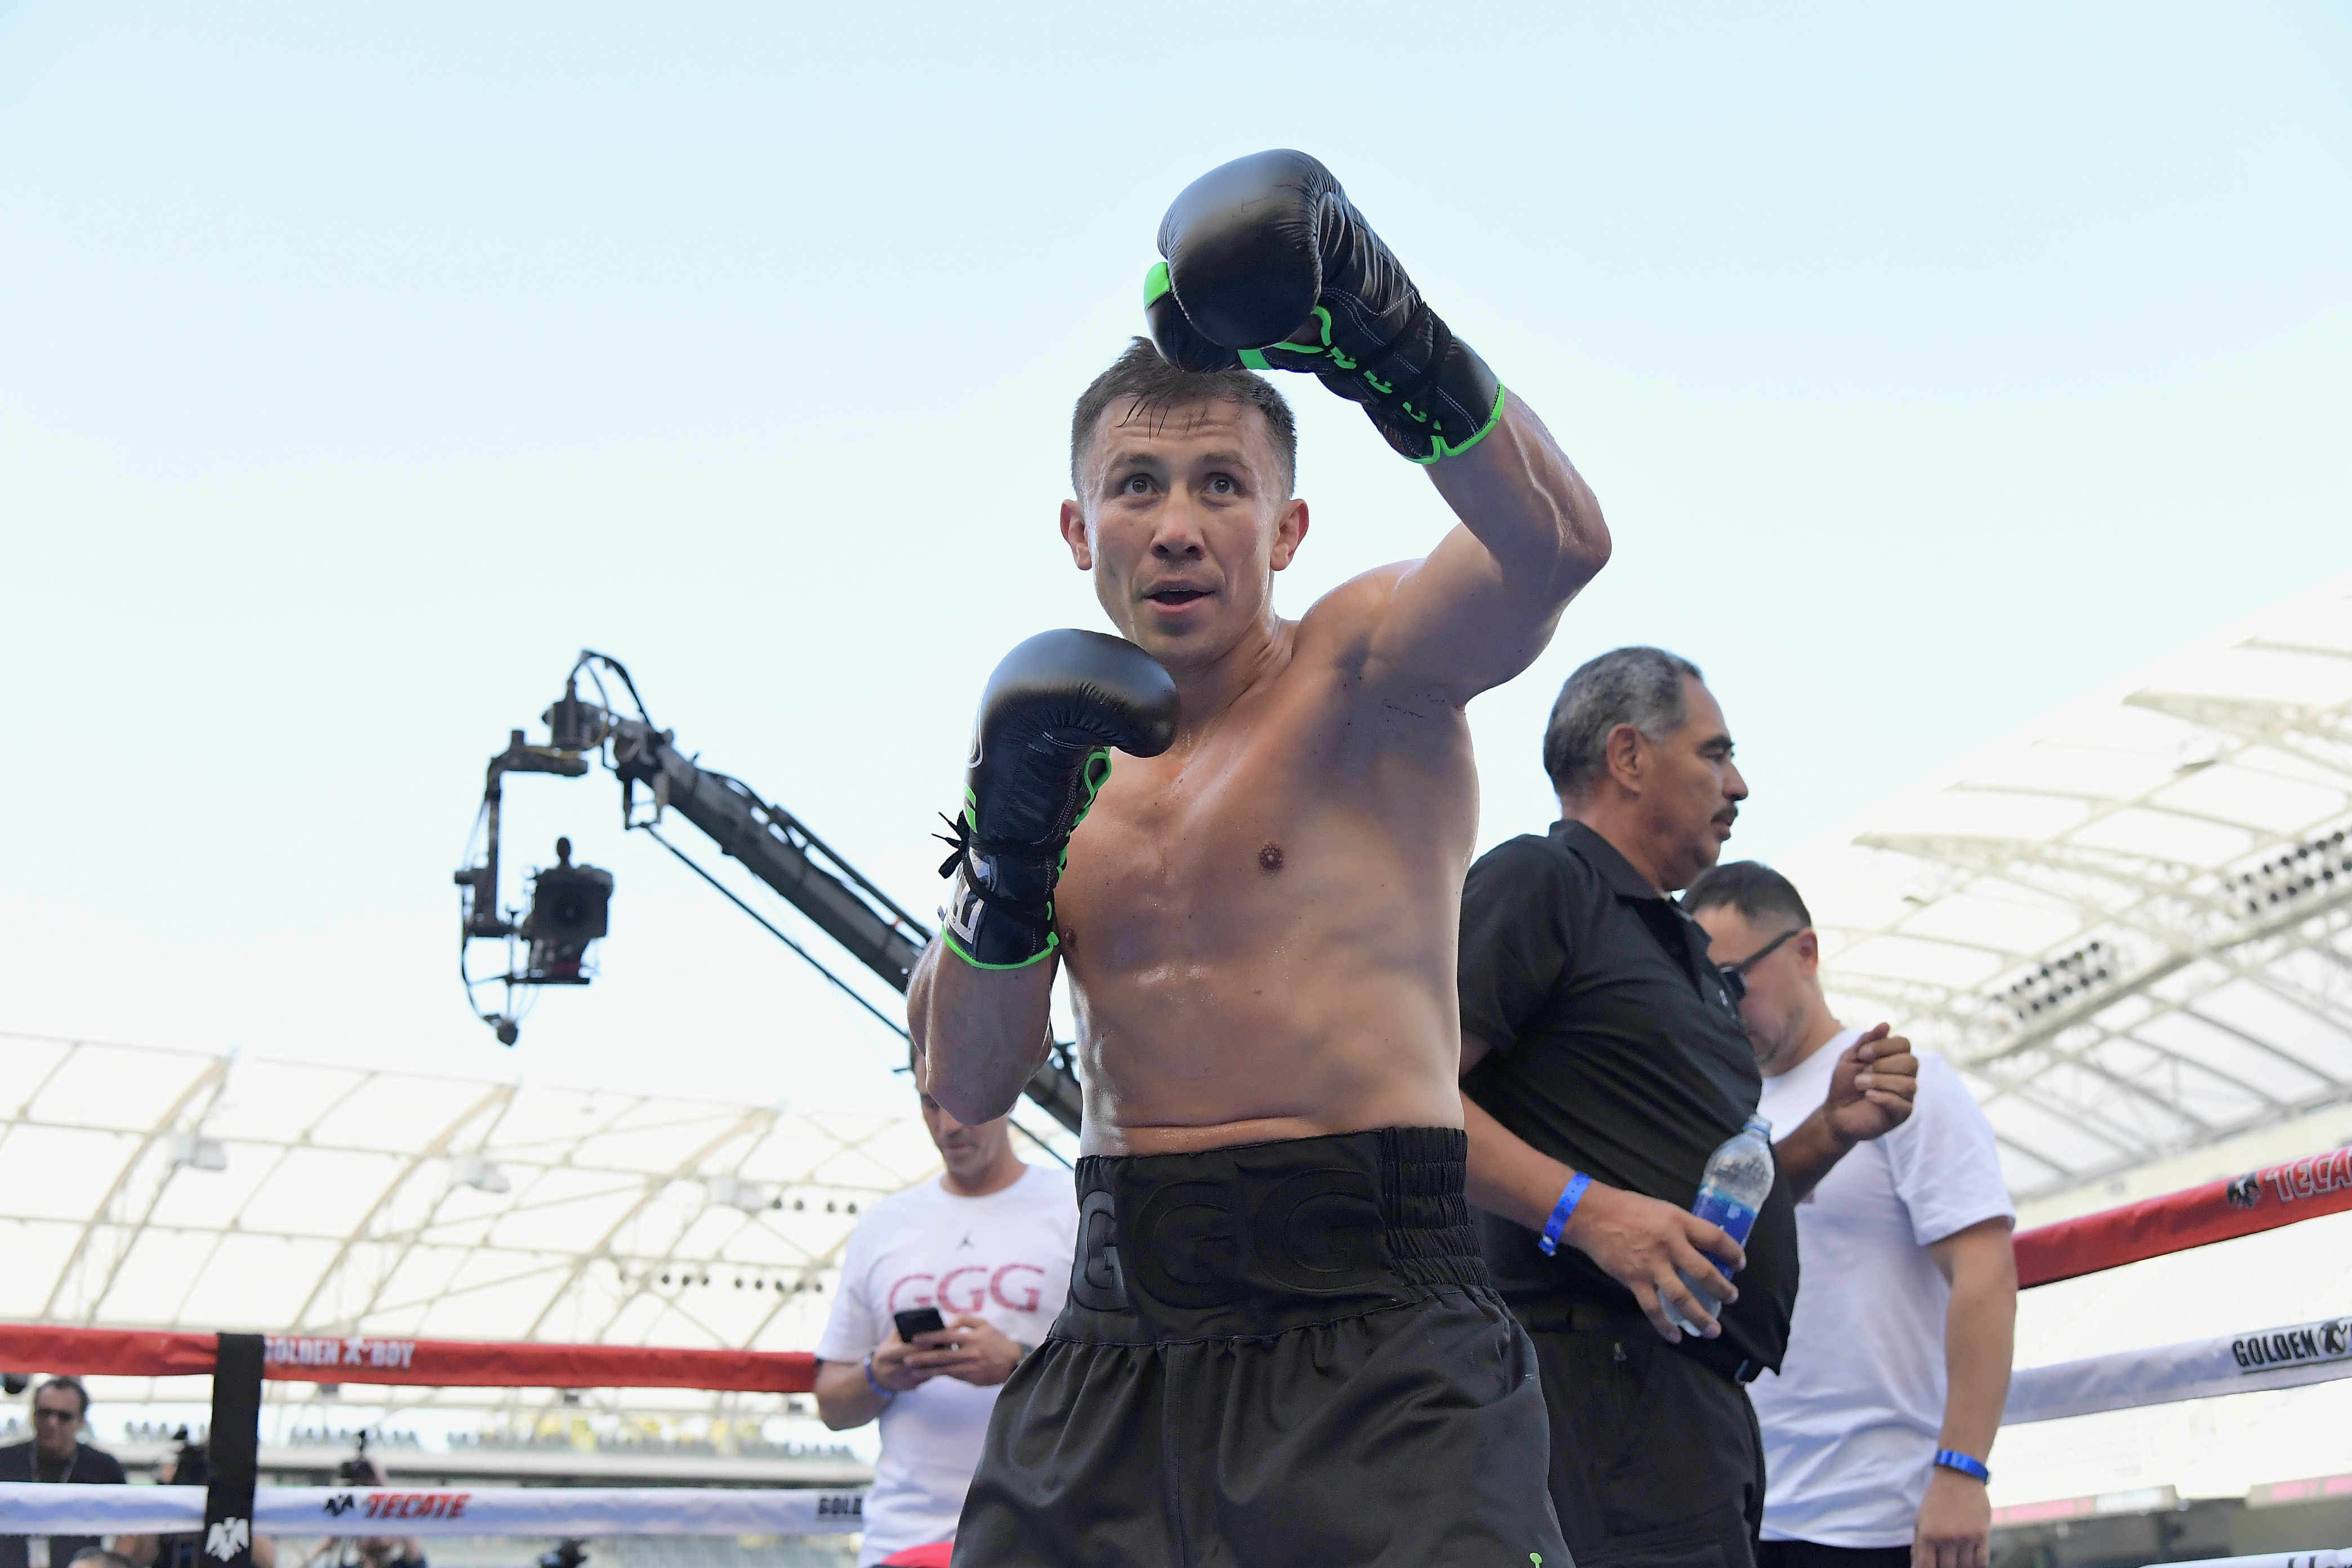 The Chivas Fight Club In The Ring With Gennady 'GGG' Golovkin At Banc Of California Stadium As He Prepares For The Anticipated Rematch With Canelo Alvarez In Las Vegas On September 15